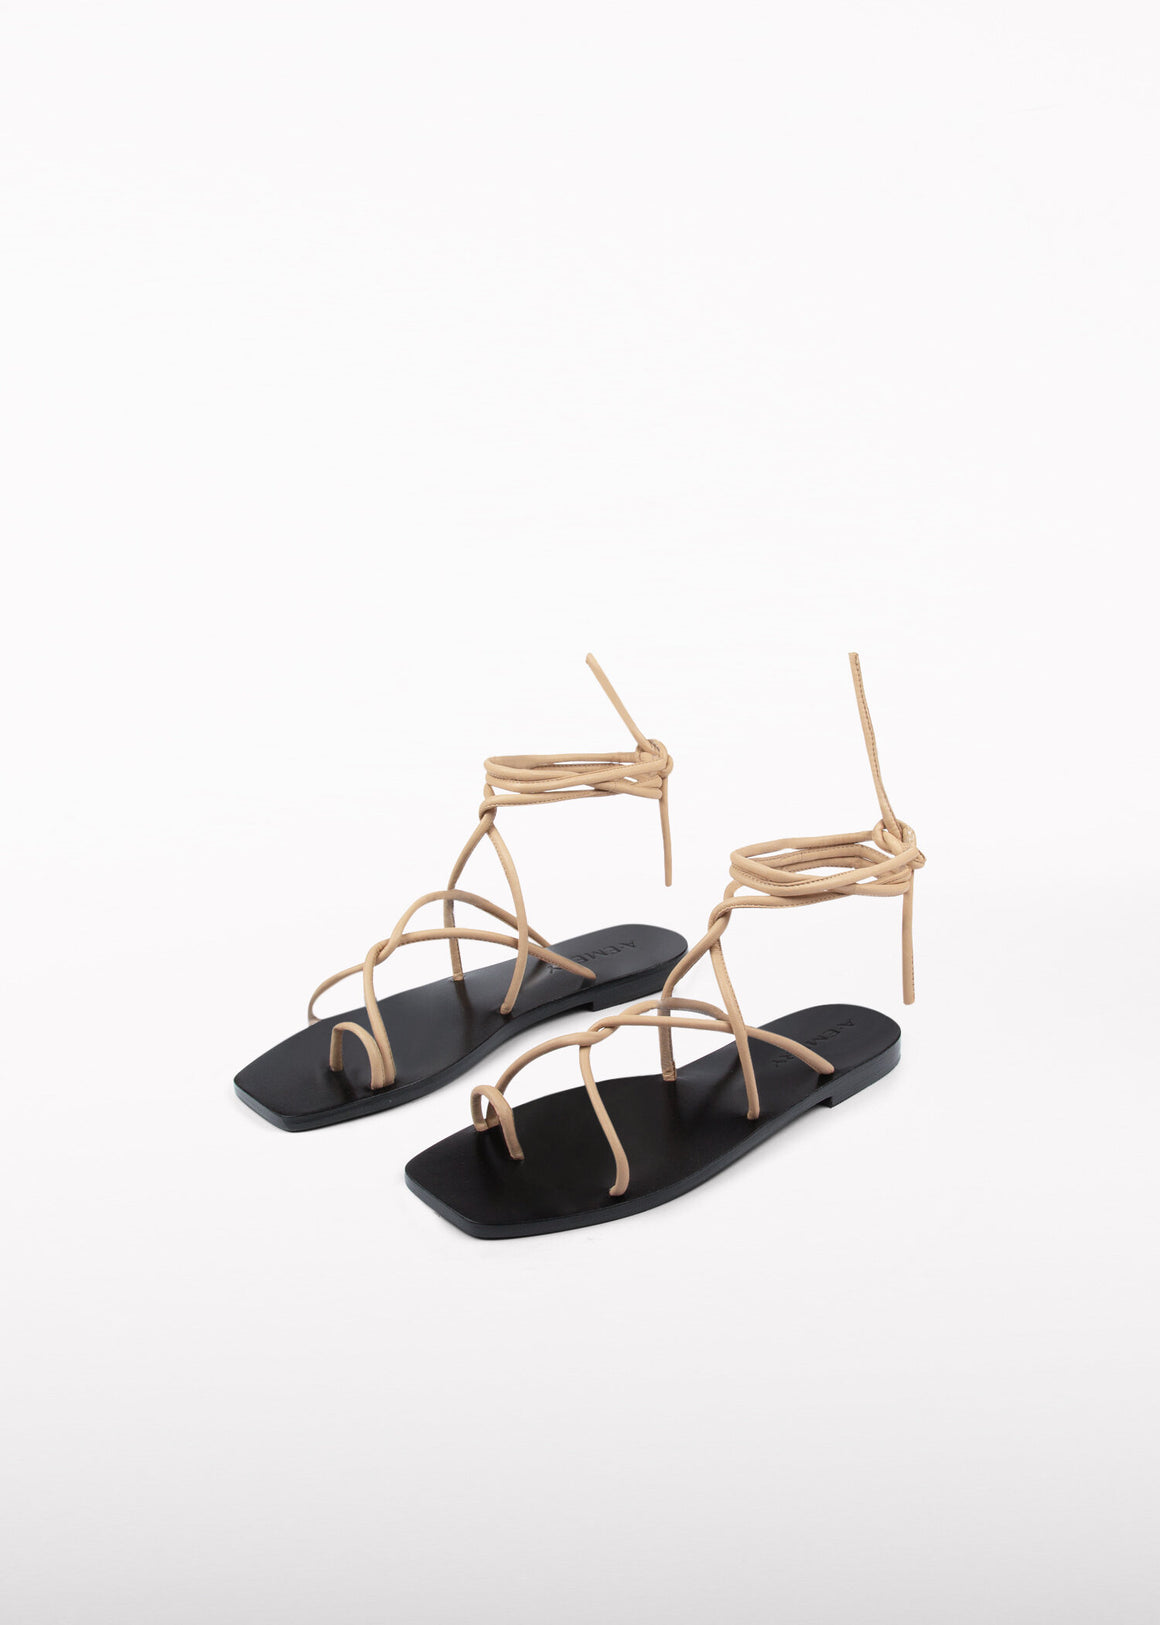 The Kinsley sandal gracefully folds over the foot and ties up the ankle. A toe hold securely keeps the foot in place. The ankle ties elevate a day or evening look.